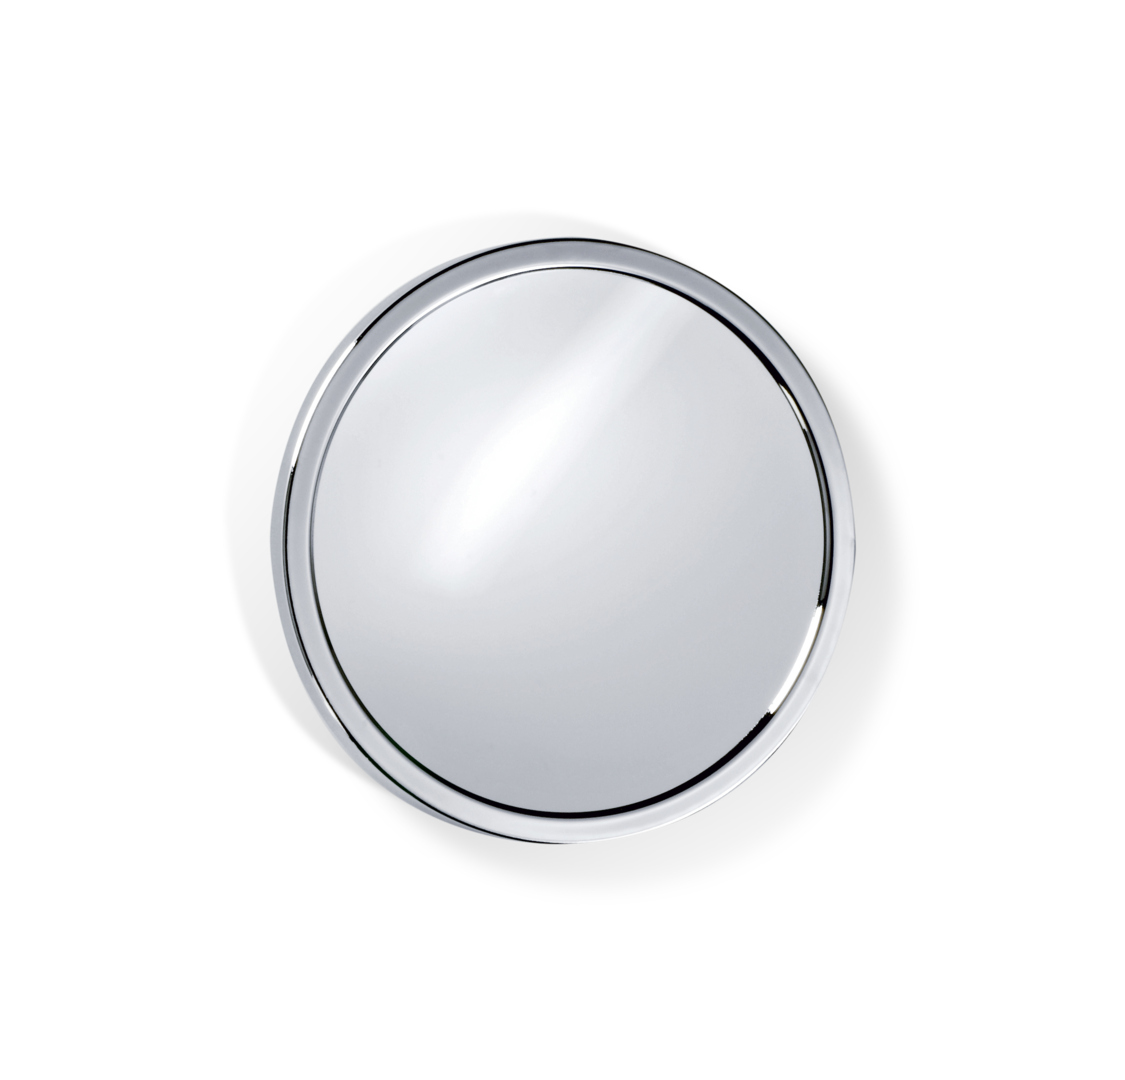 Decor Walther 0101400 DW-SPT 2 Cosmetic Mirror with Suction Cup - Chrome